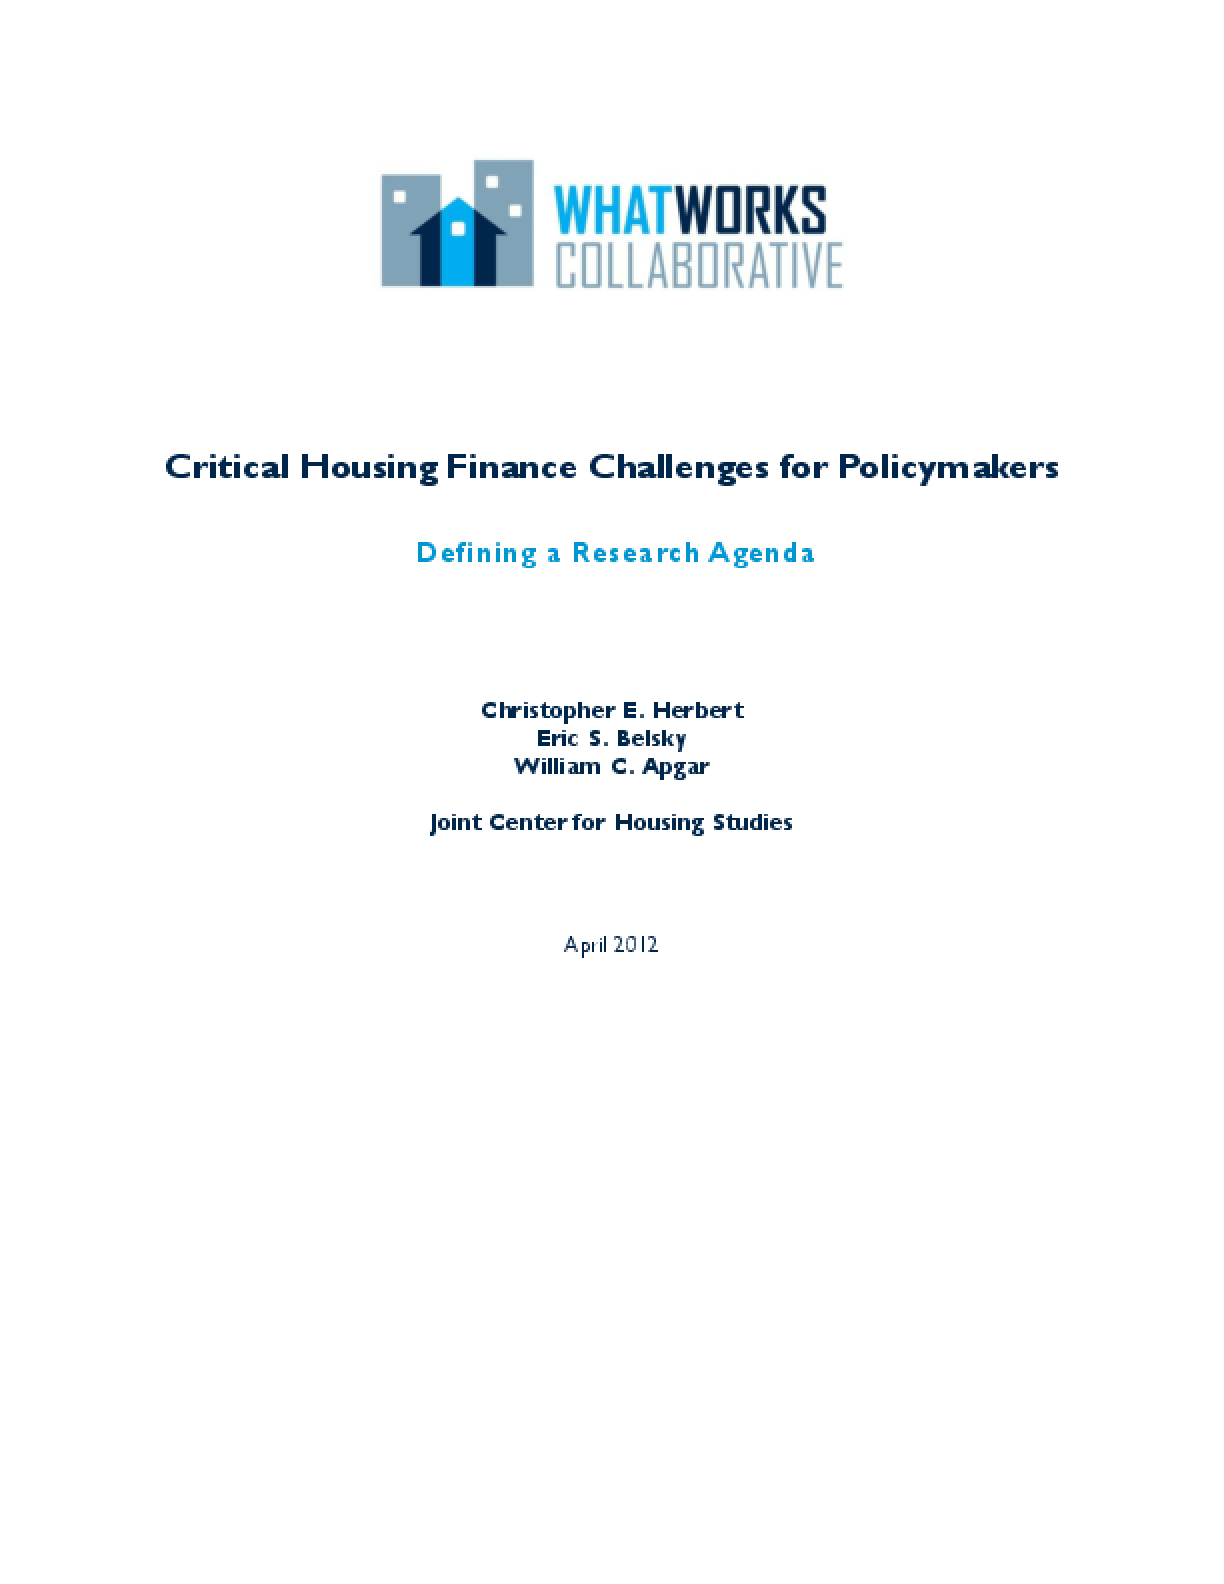 Critical Housing Finance Challenges for Policy Makers